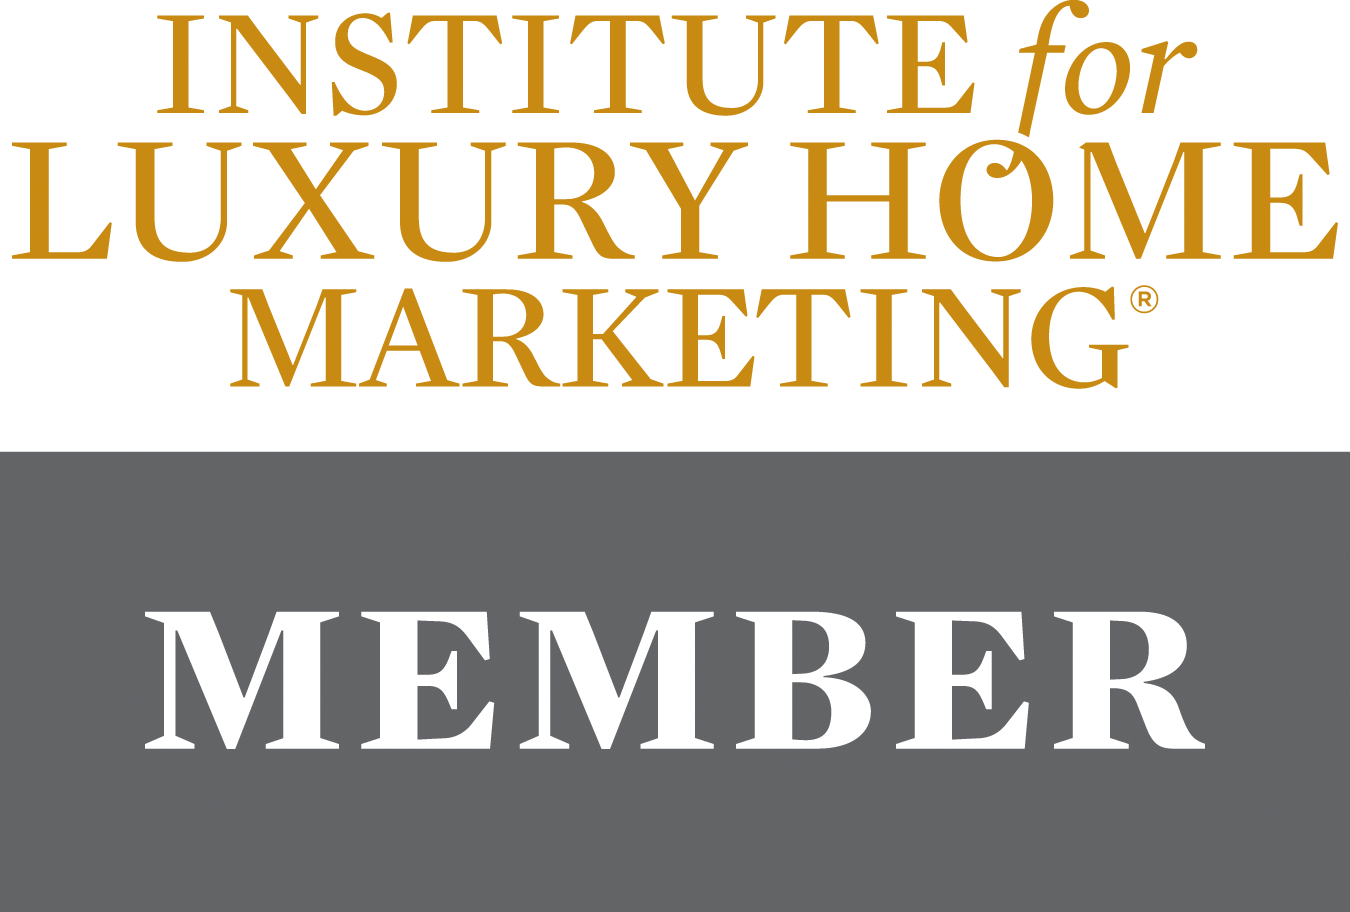 Luxury Home Marketing Member